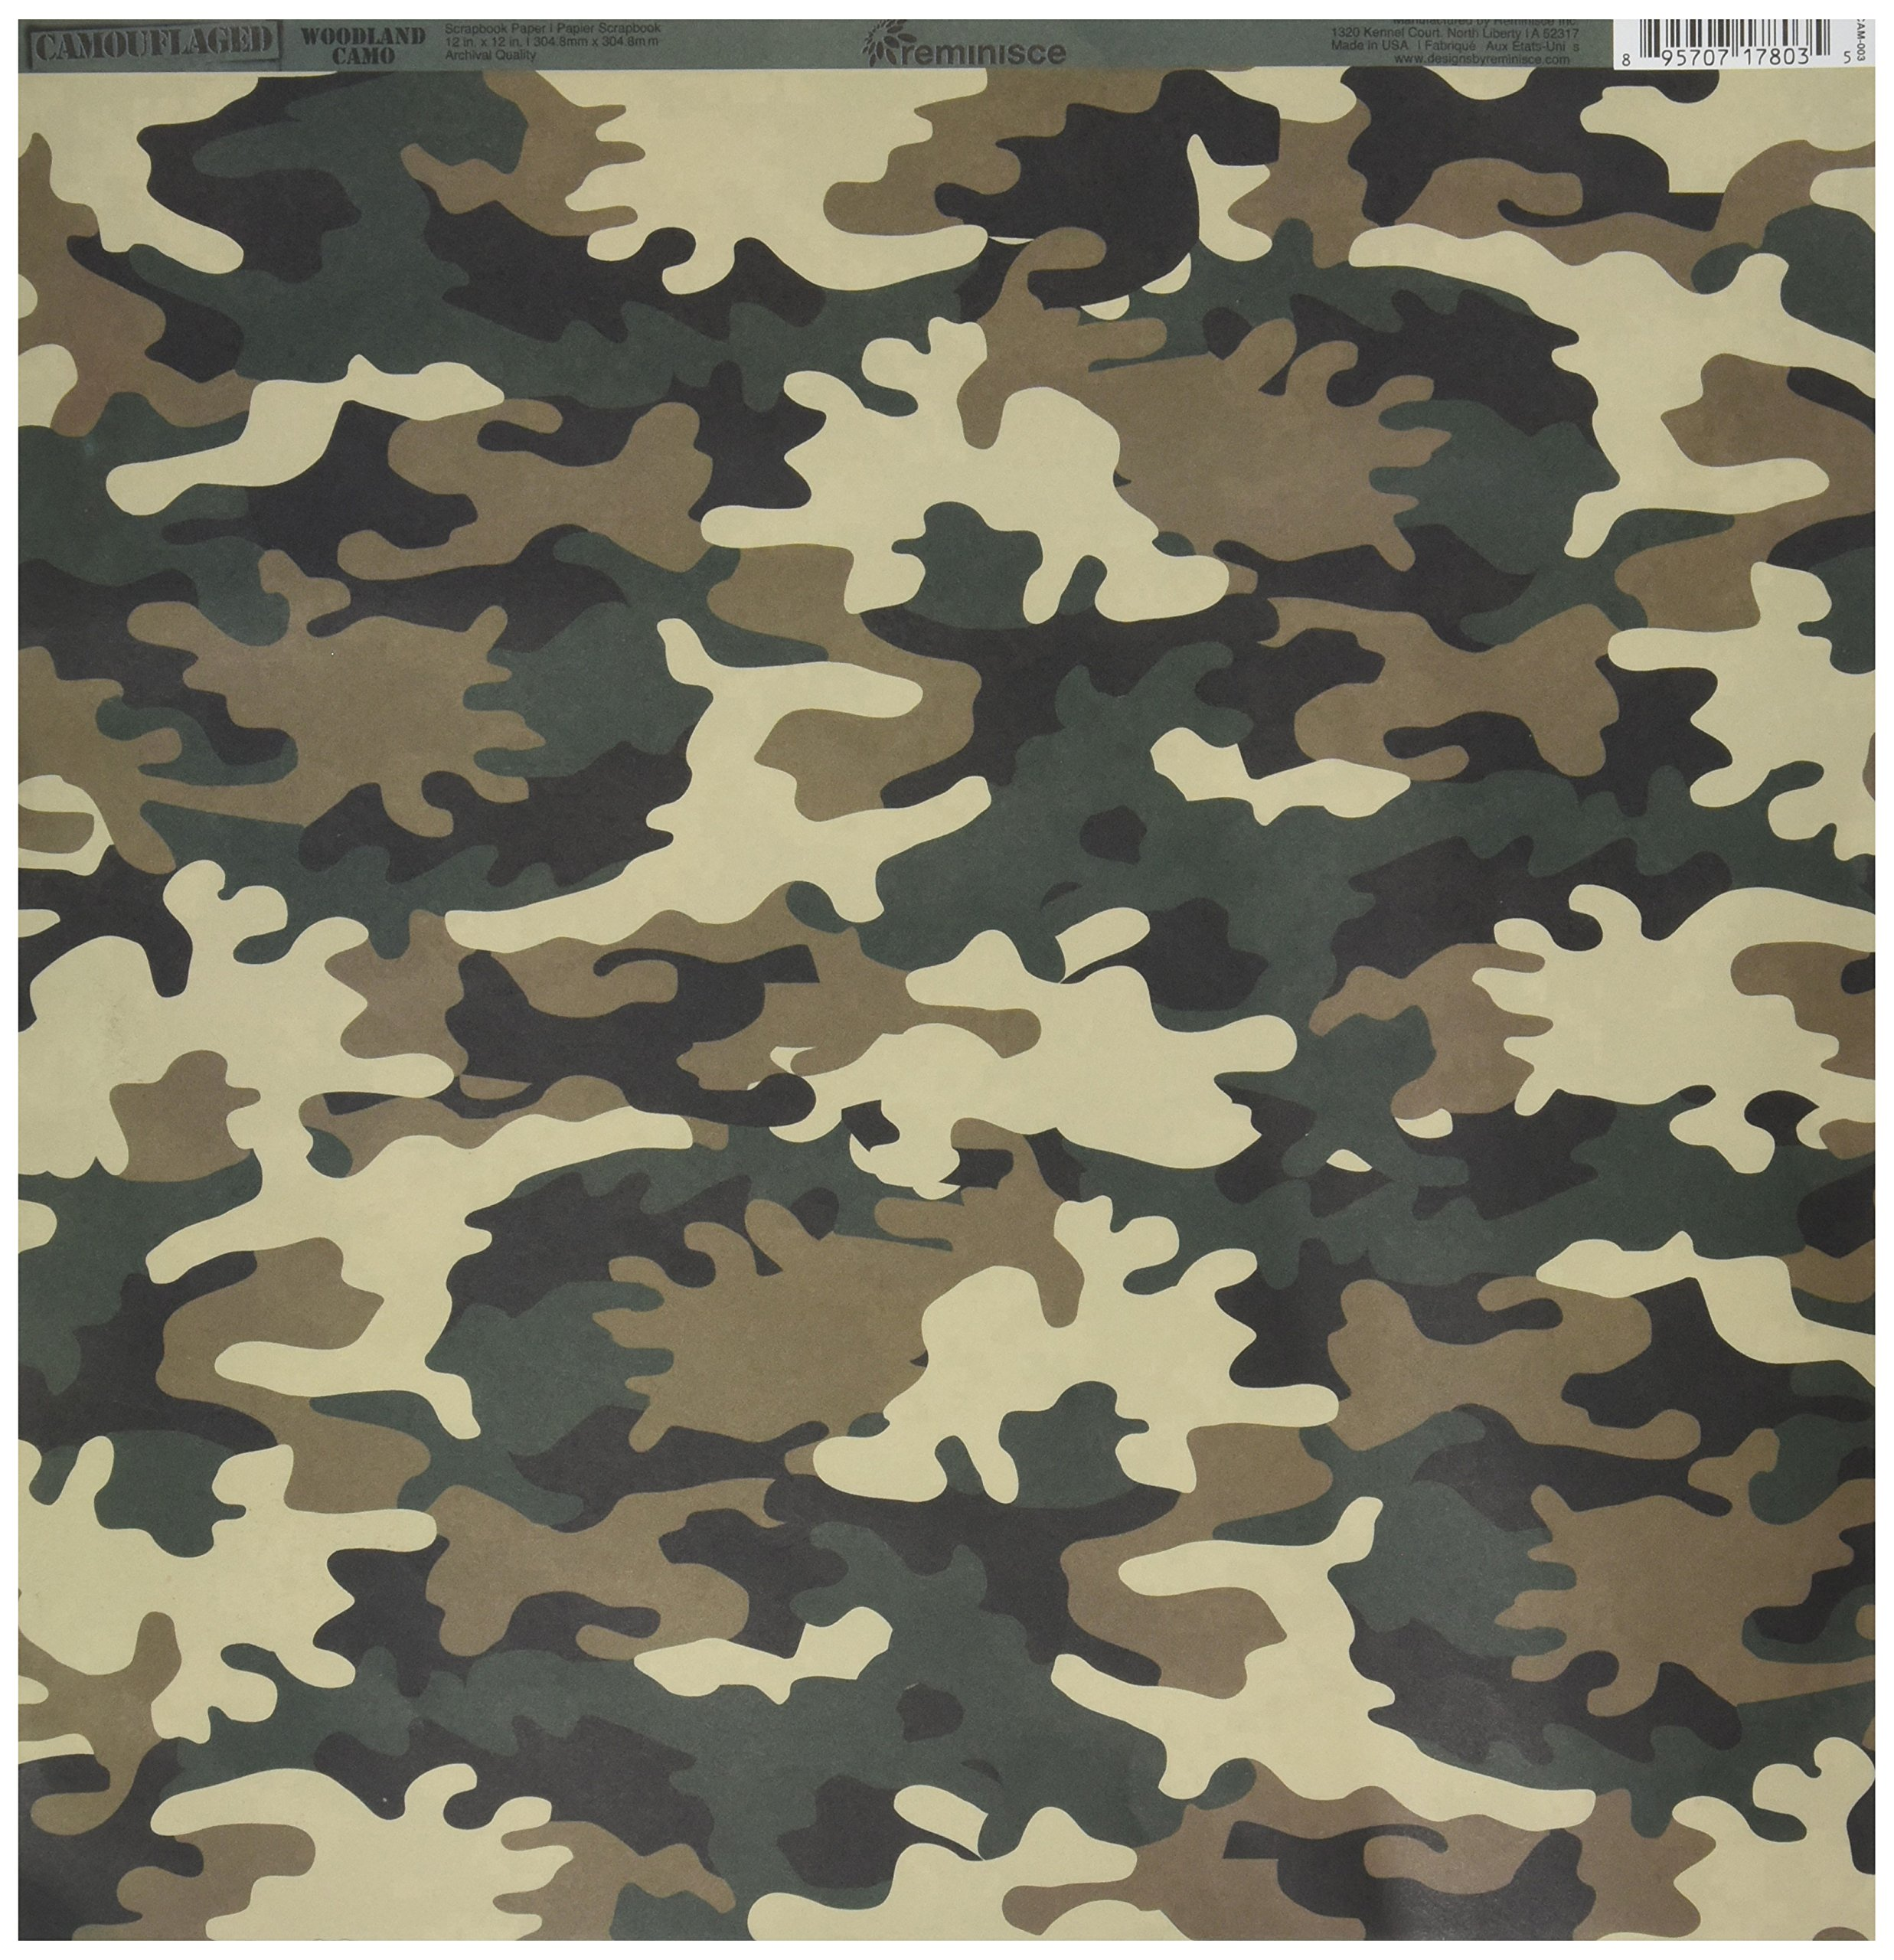 Reminisce Camouflaged 12 by 12-Inch Double Sided Scrapbook Paper, Woodland Camo (CAM-003)